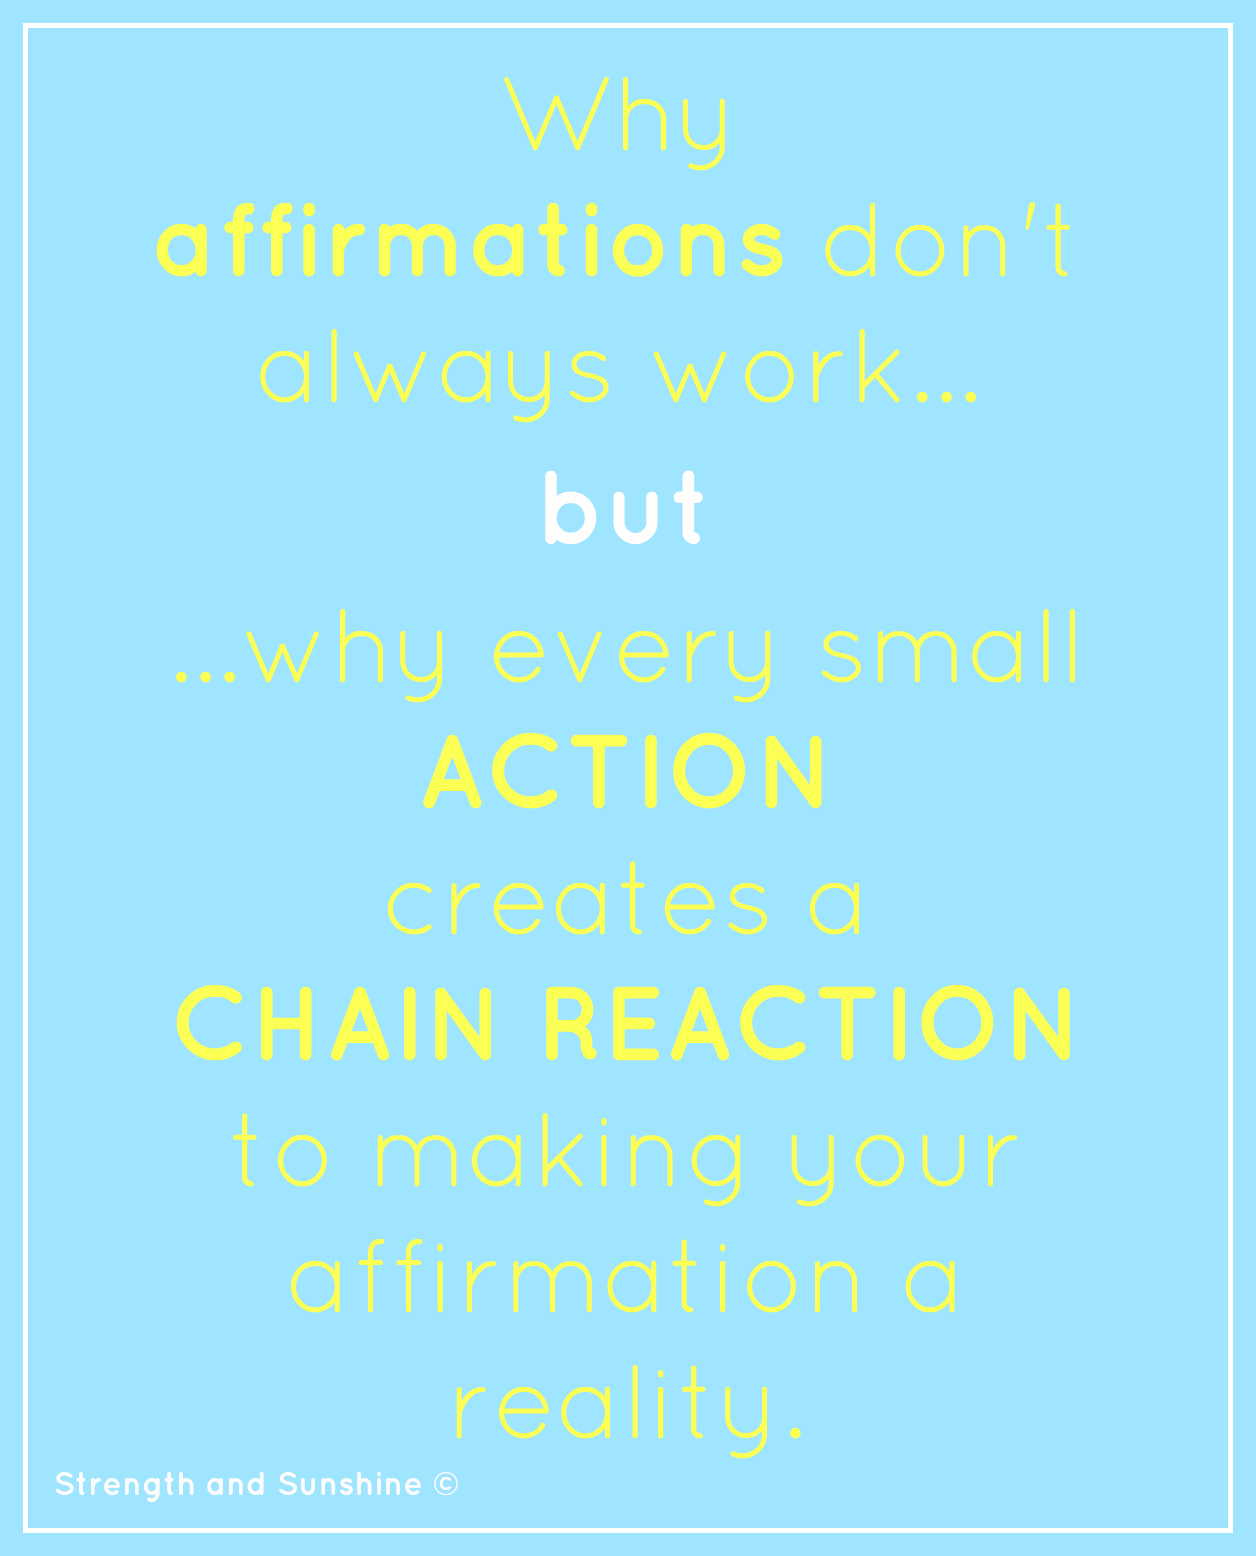 Why Affirmations Don't Always Work | Strength and Sunshine @RebeccaGF666 #powermonday #motivation #affirmations